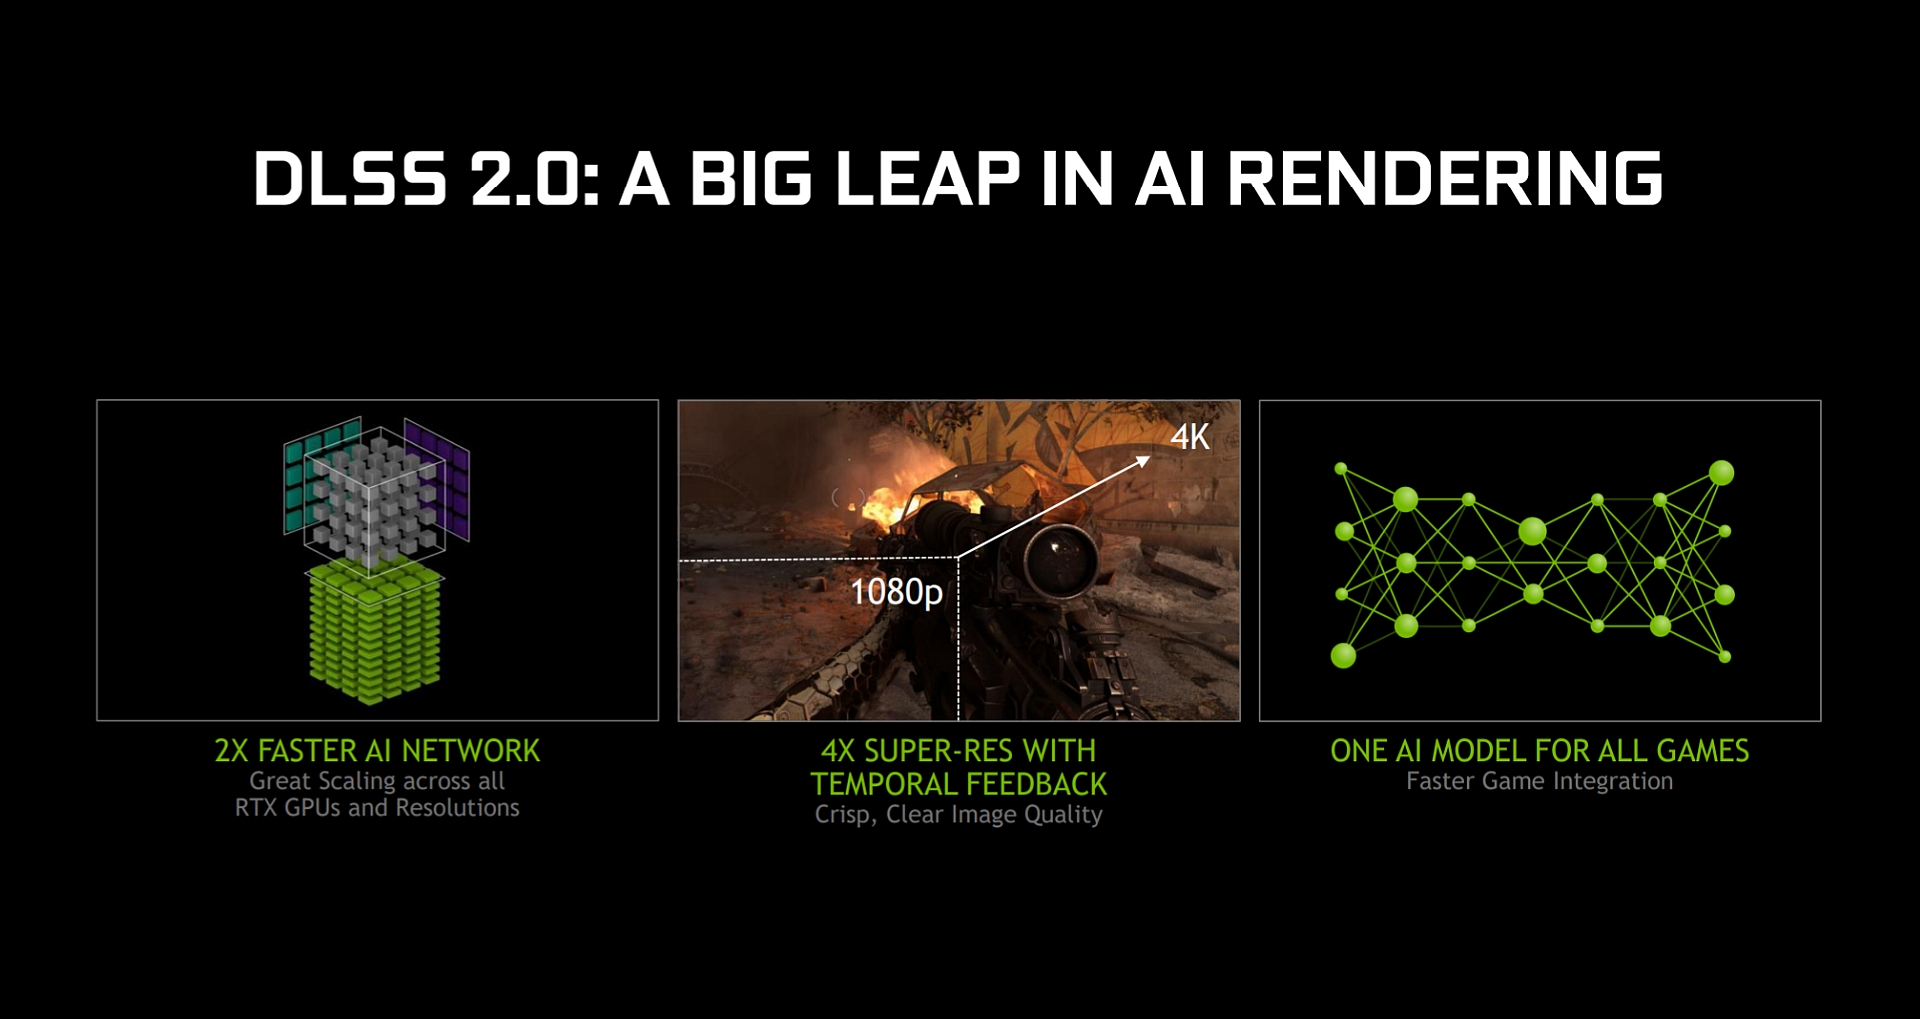 NVIDIA DLSS 2.0 Revealed – 2x Faster AI Model, Quicker Game Integration, Unreal Engine 4 Support - Wccftech